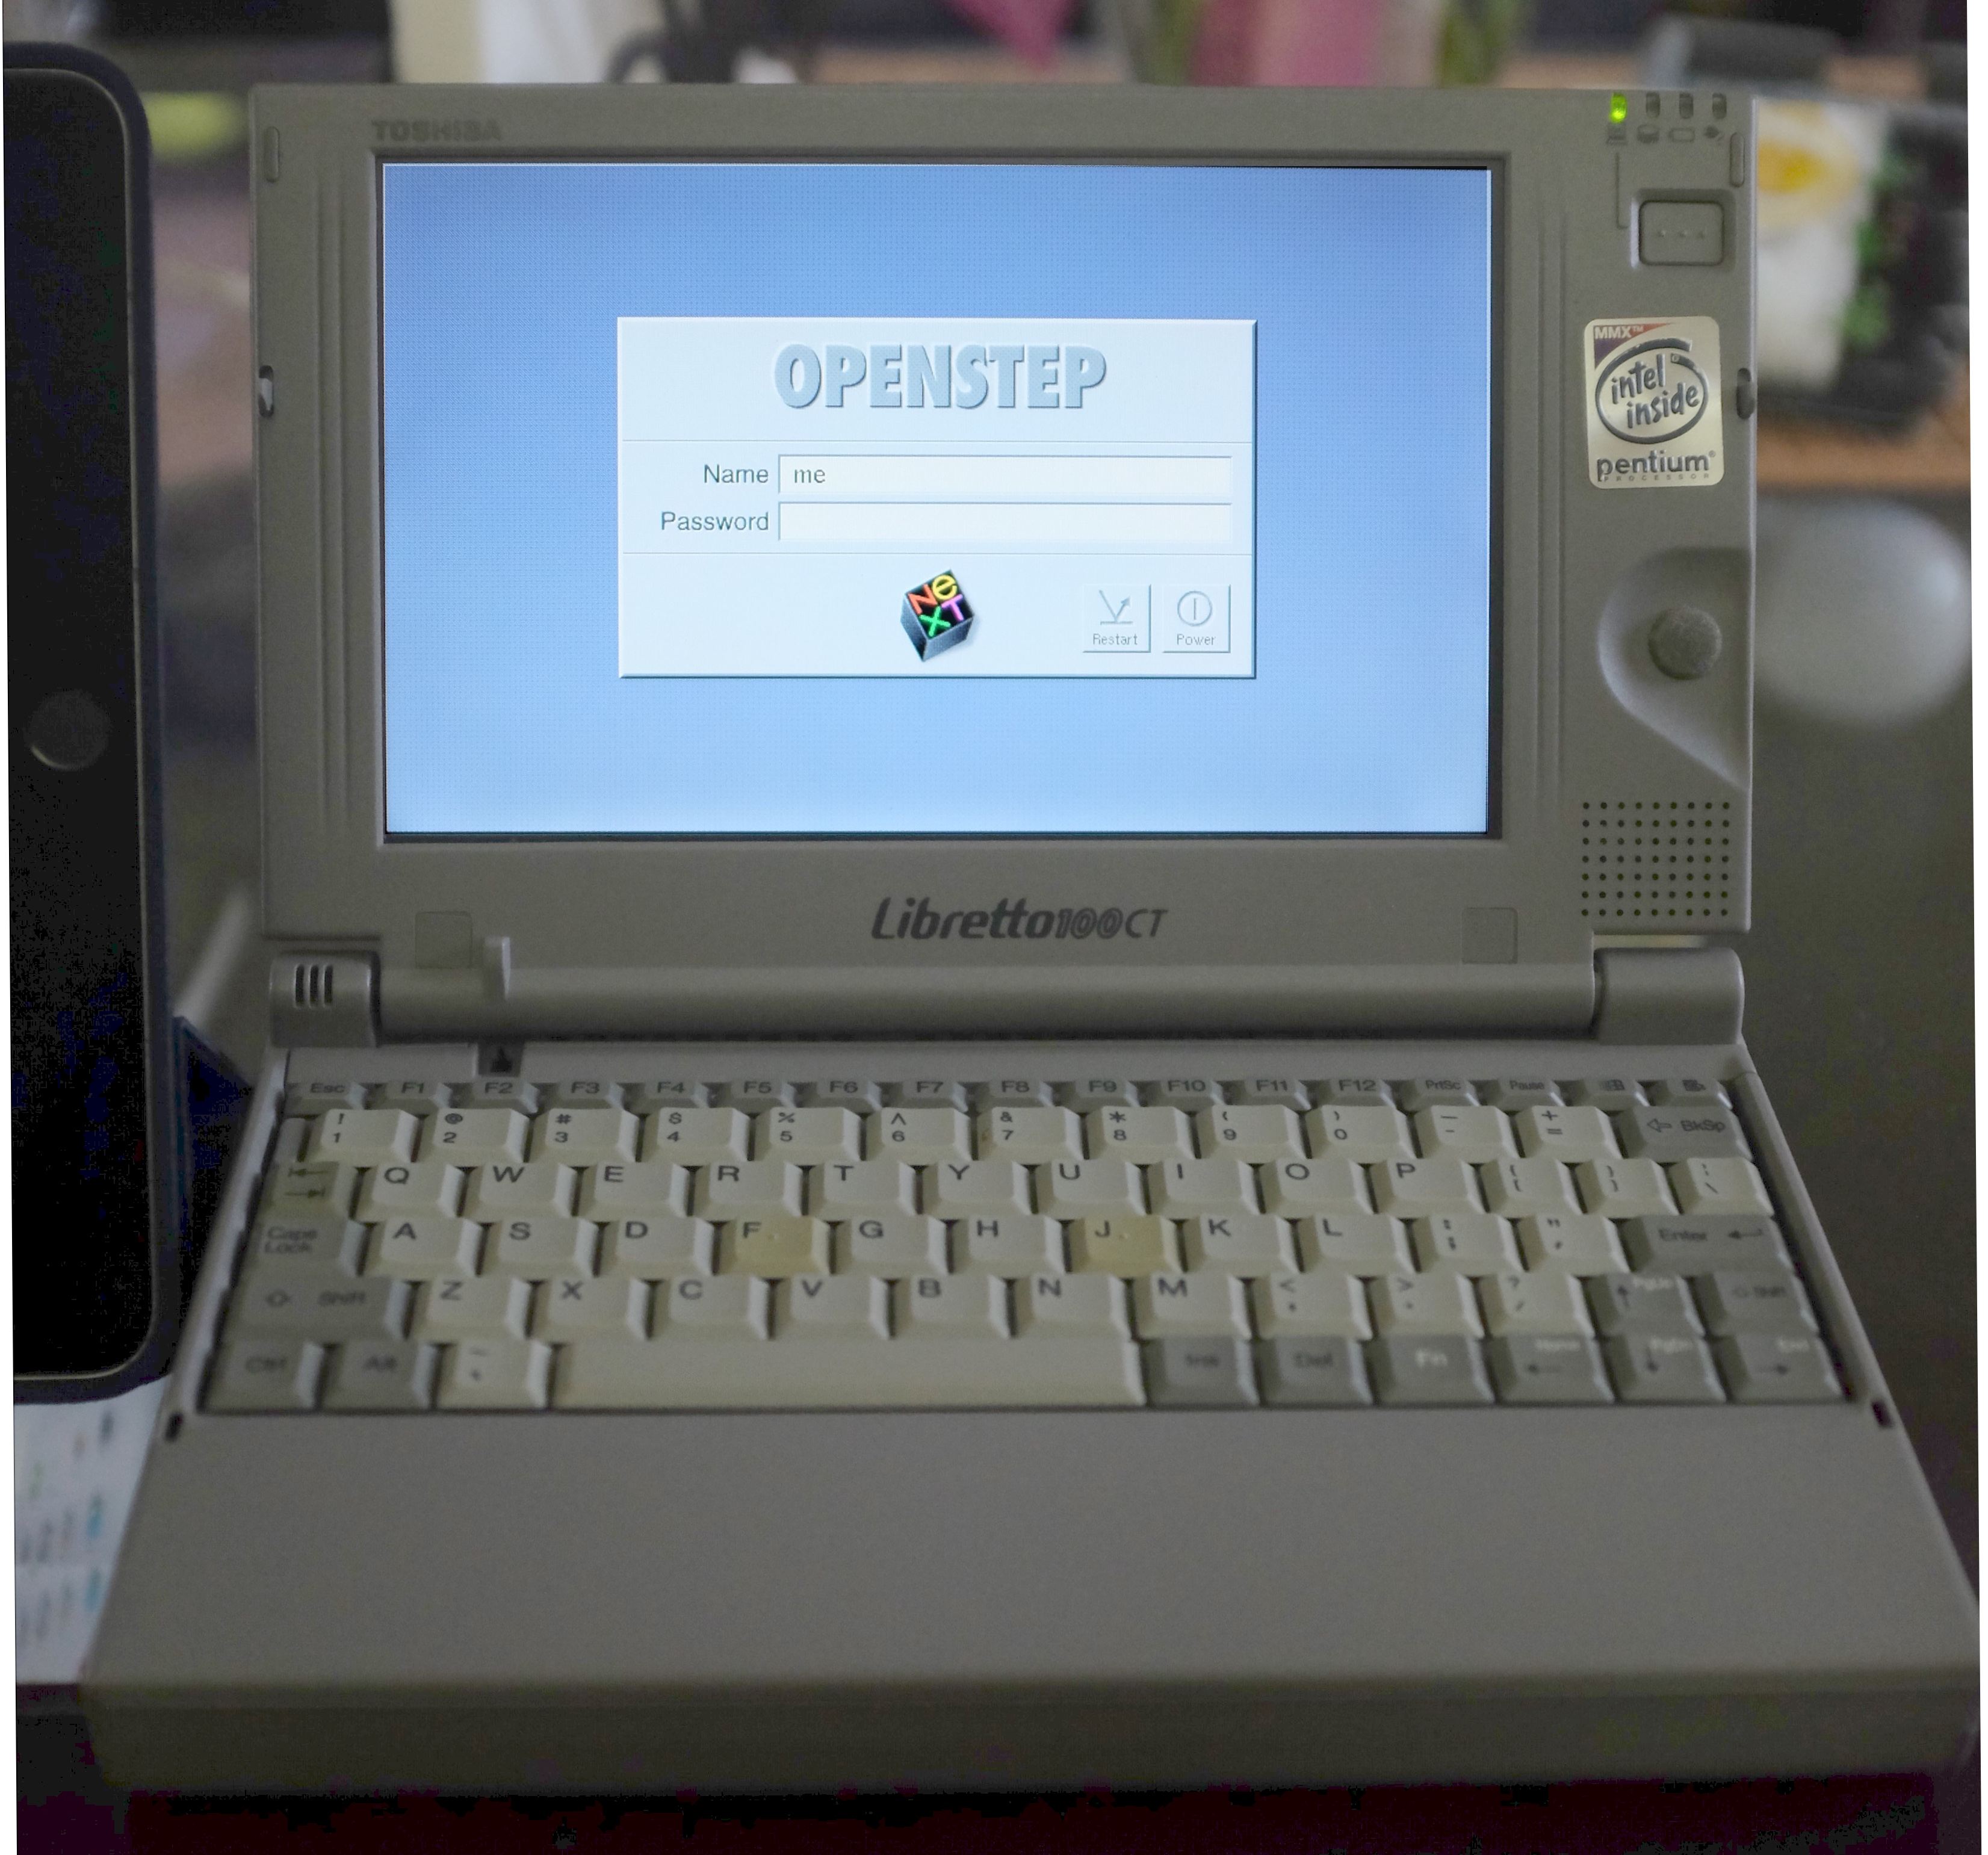 Libretto at OPENSTEP login screen